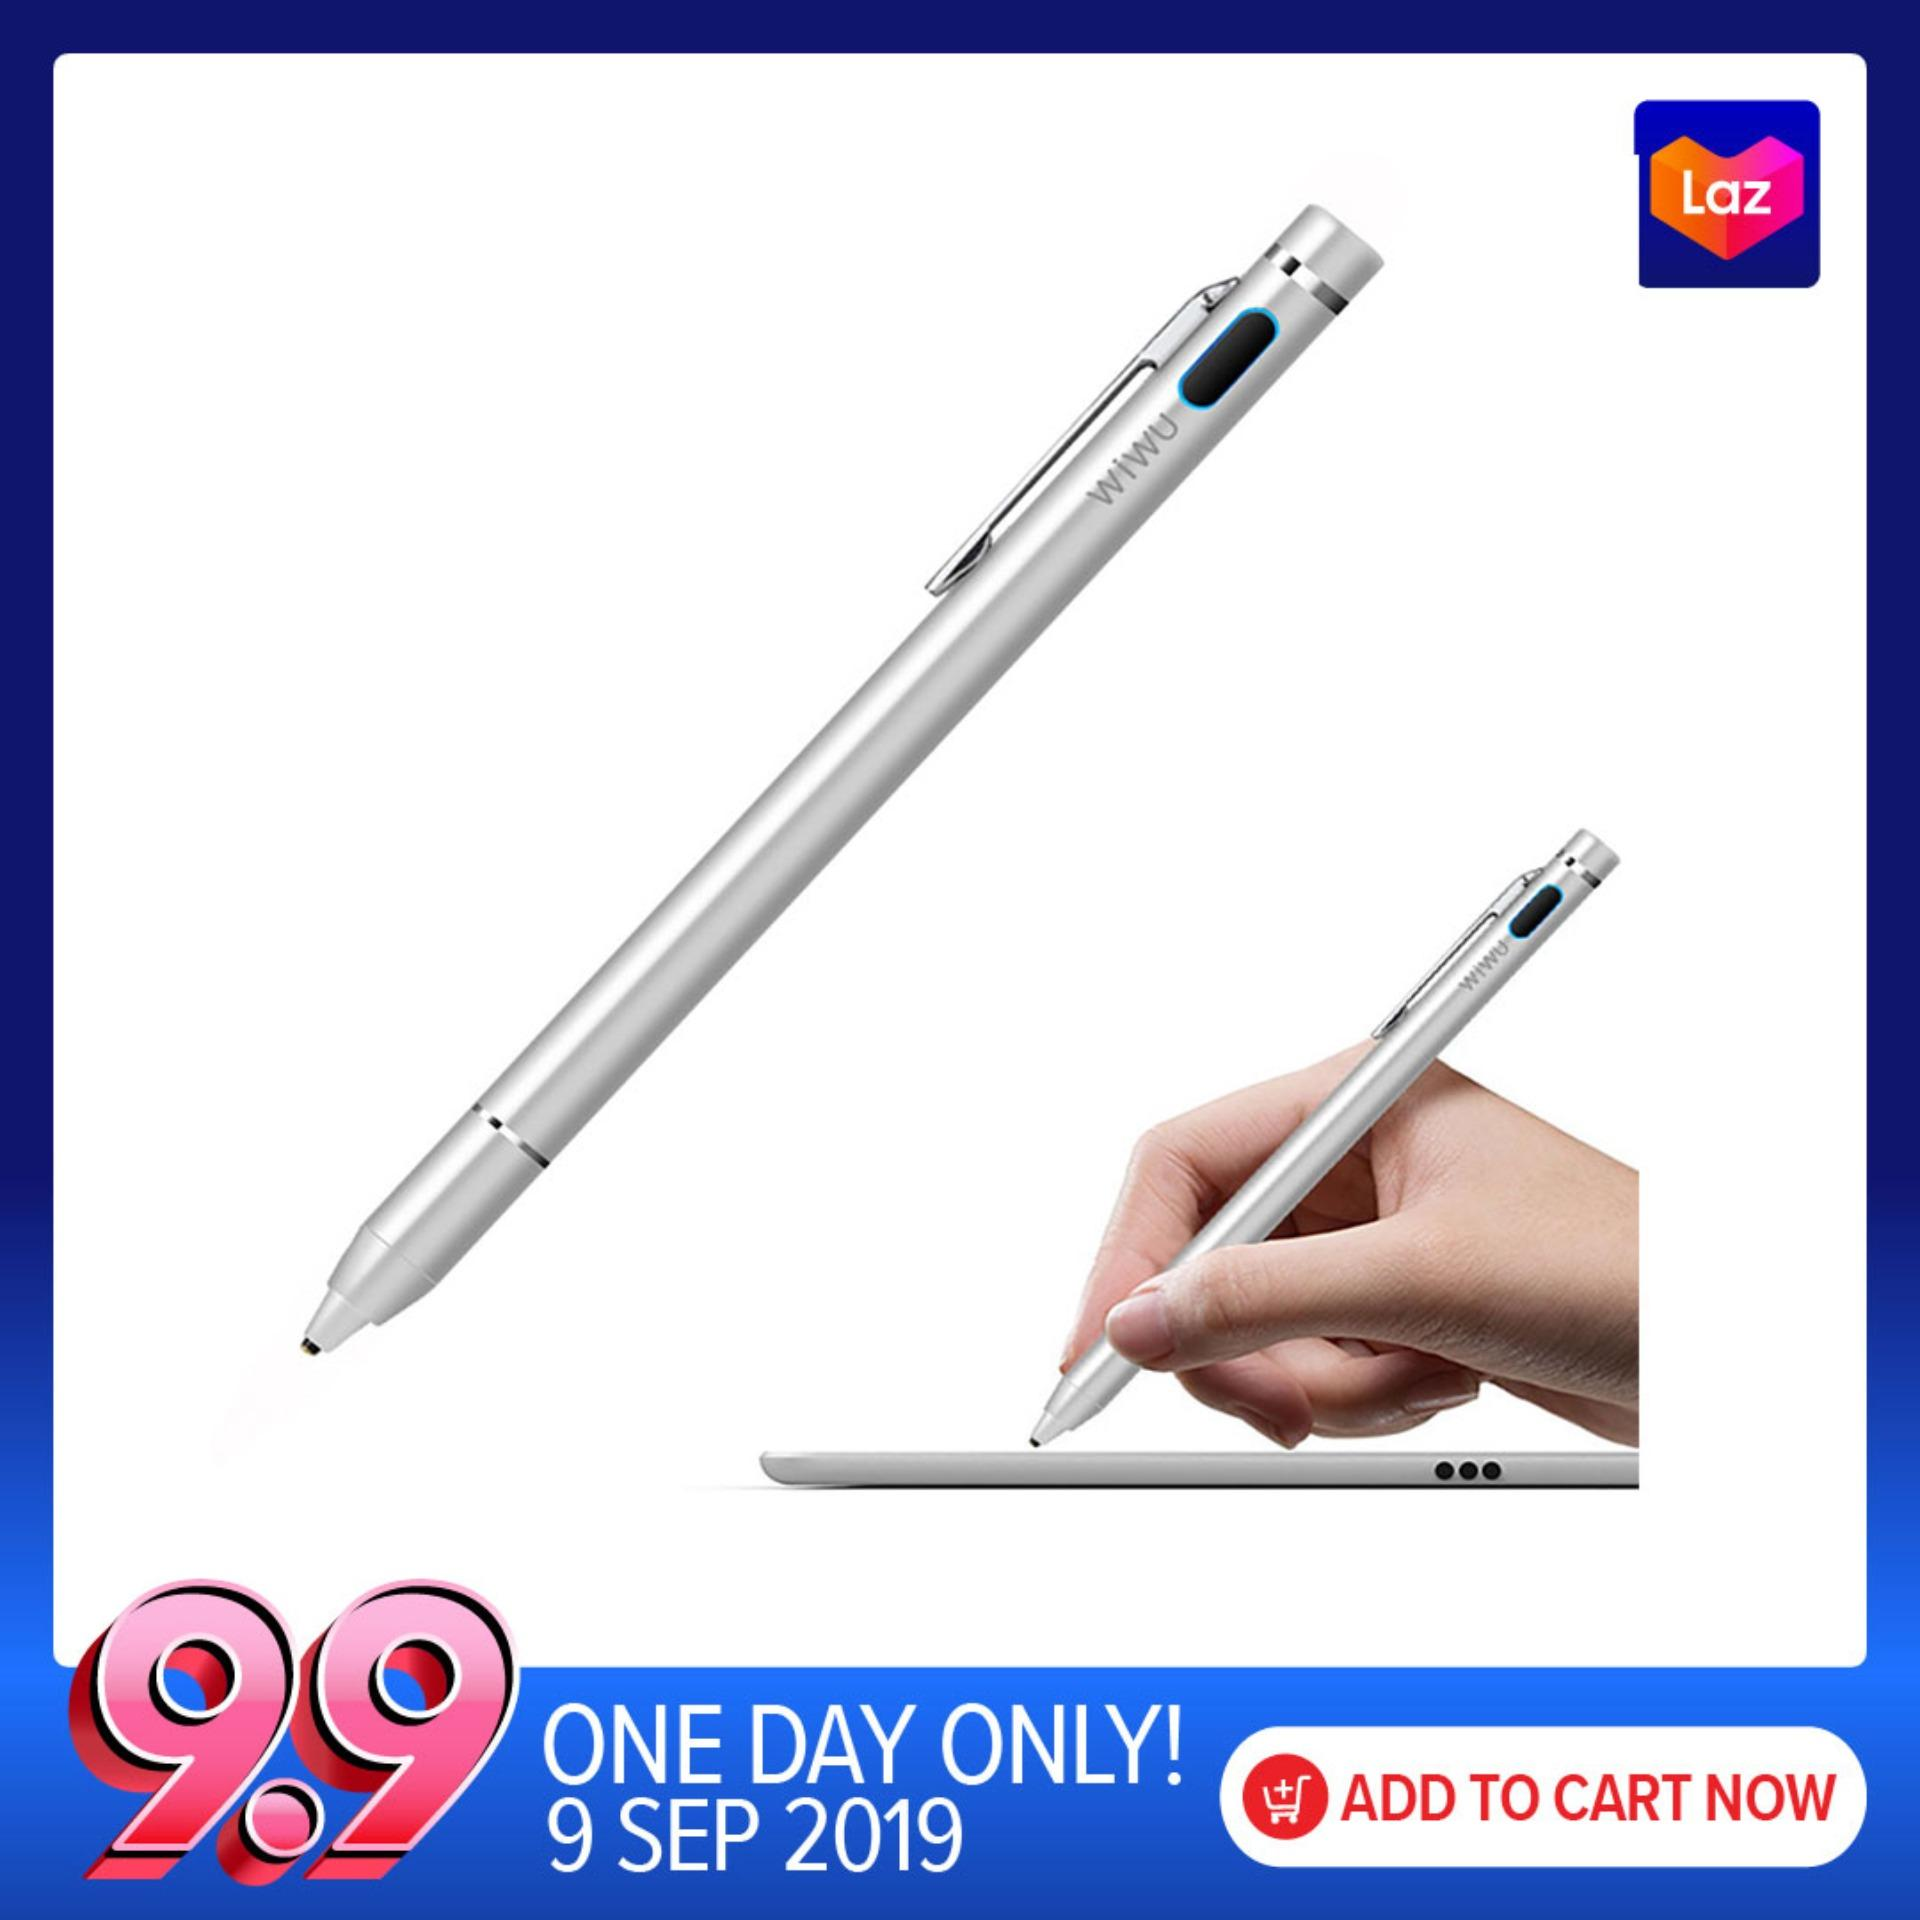 WIWU High Precision Technology Touch Screen Pen Stylus Pencil For  Iphone/Table Suitable for Apple ios and Android system